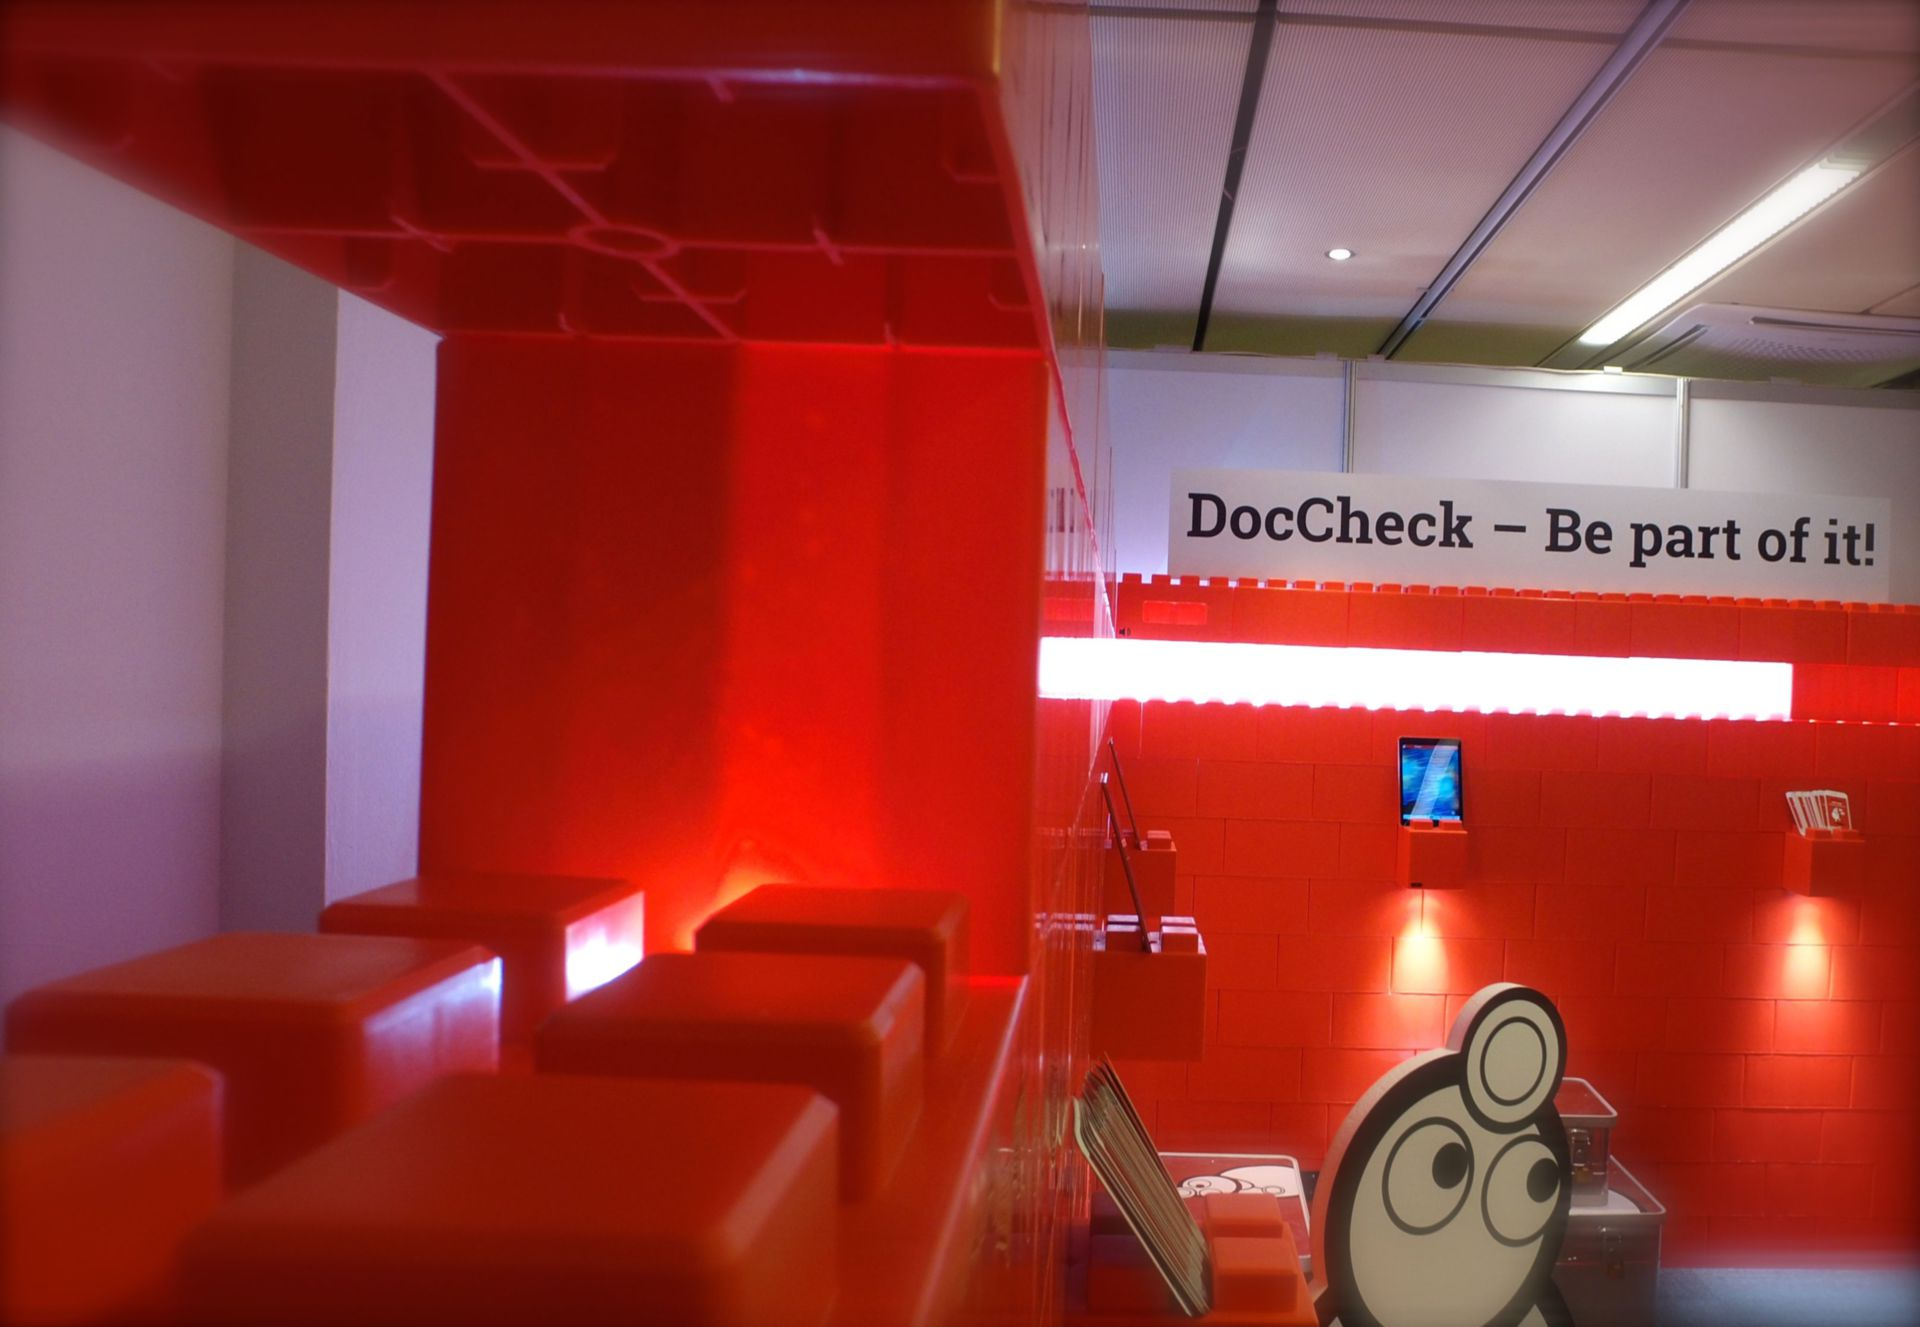 DocCheck - Be part of it